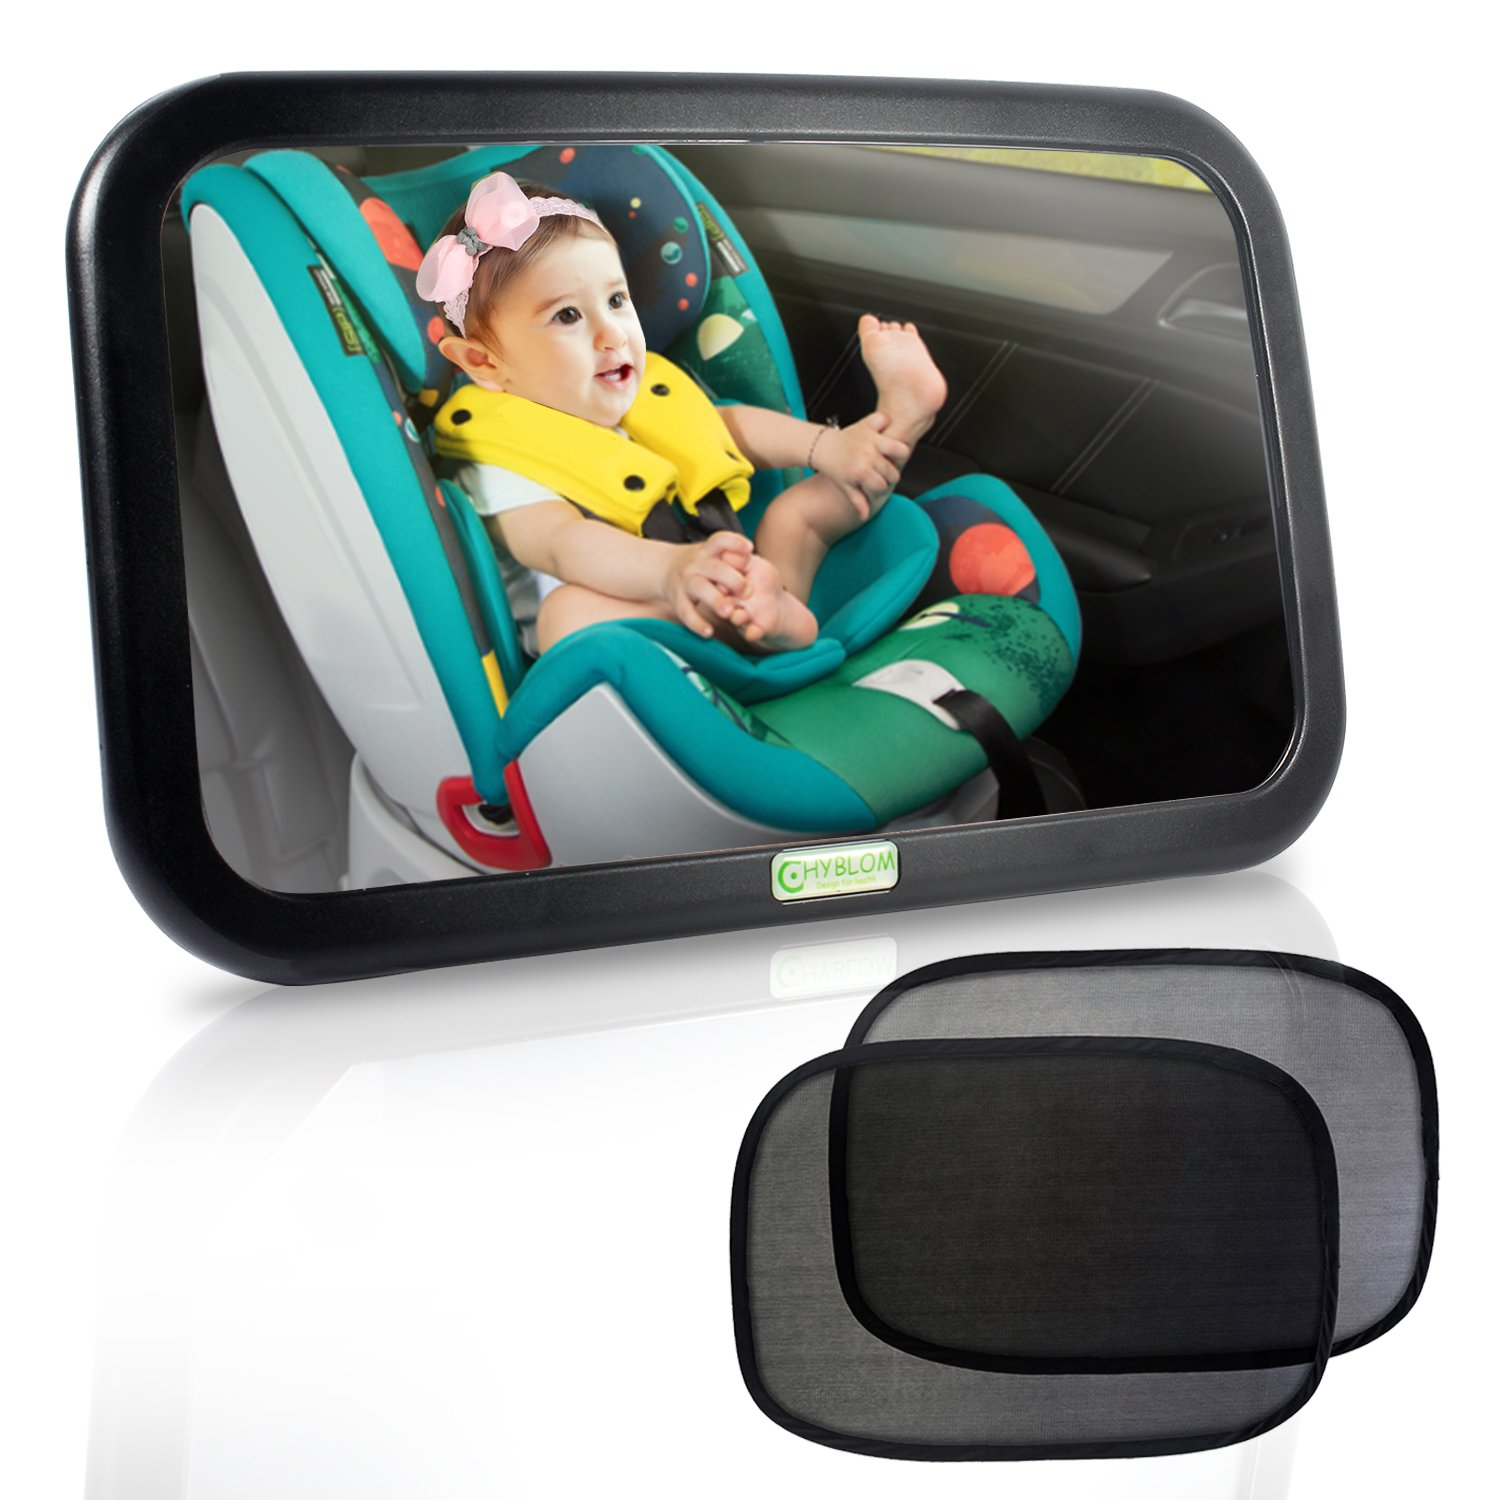 HYBLOM Baby Car Mirror For Back Seat Safety View Infant Rear Facing In